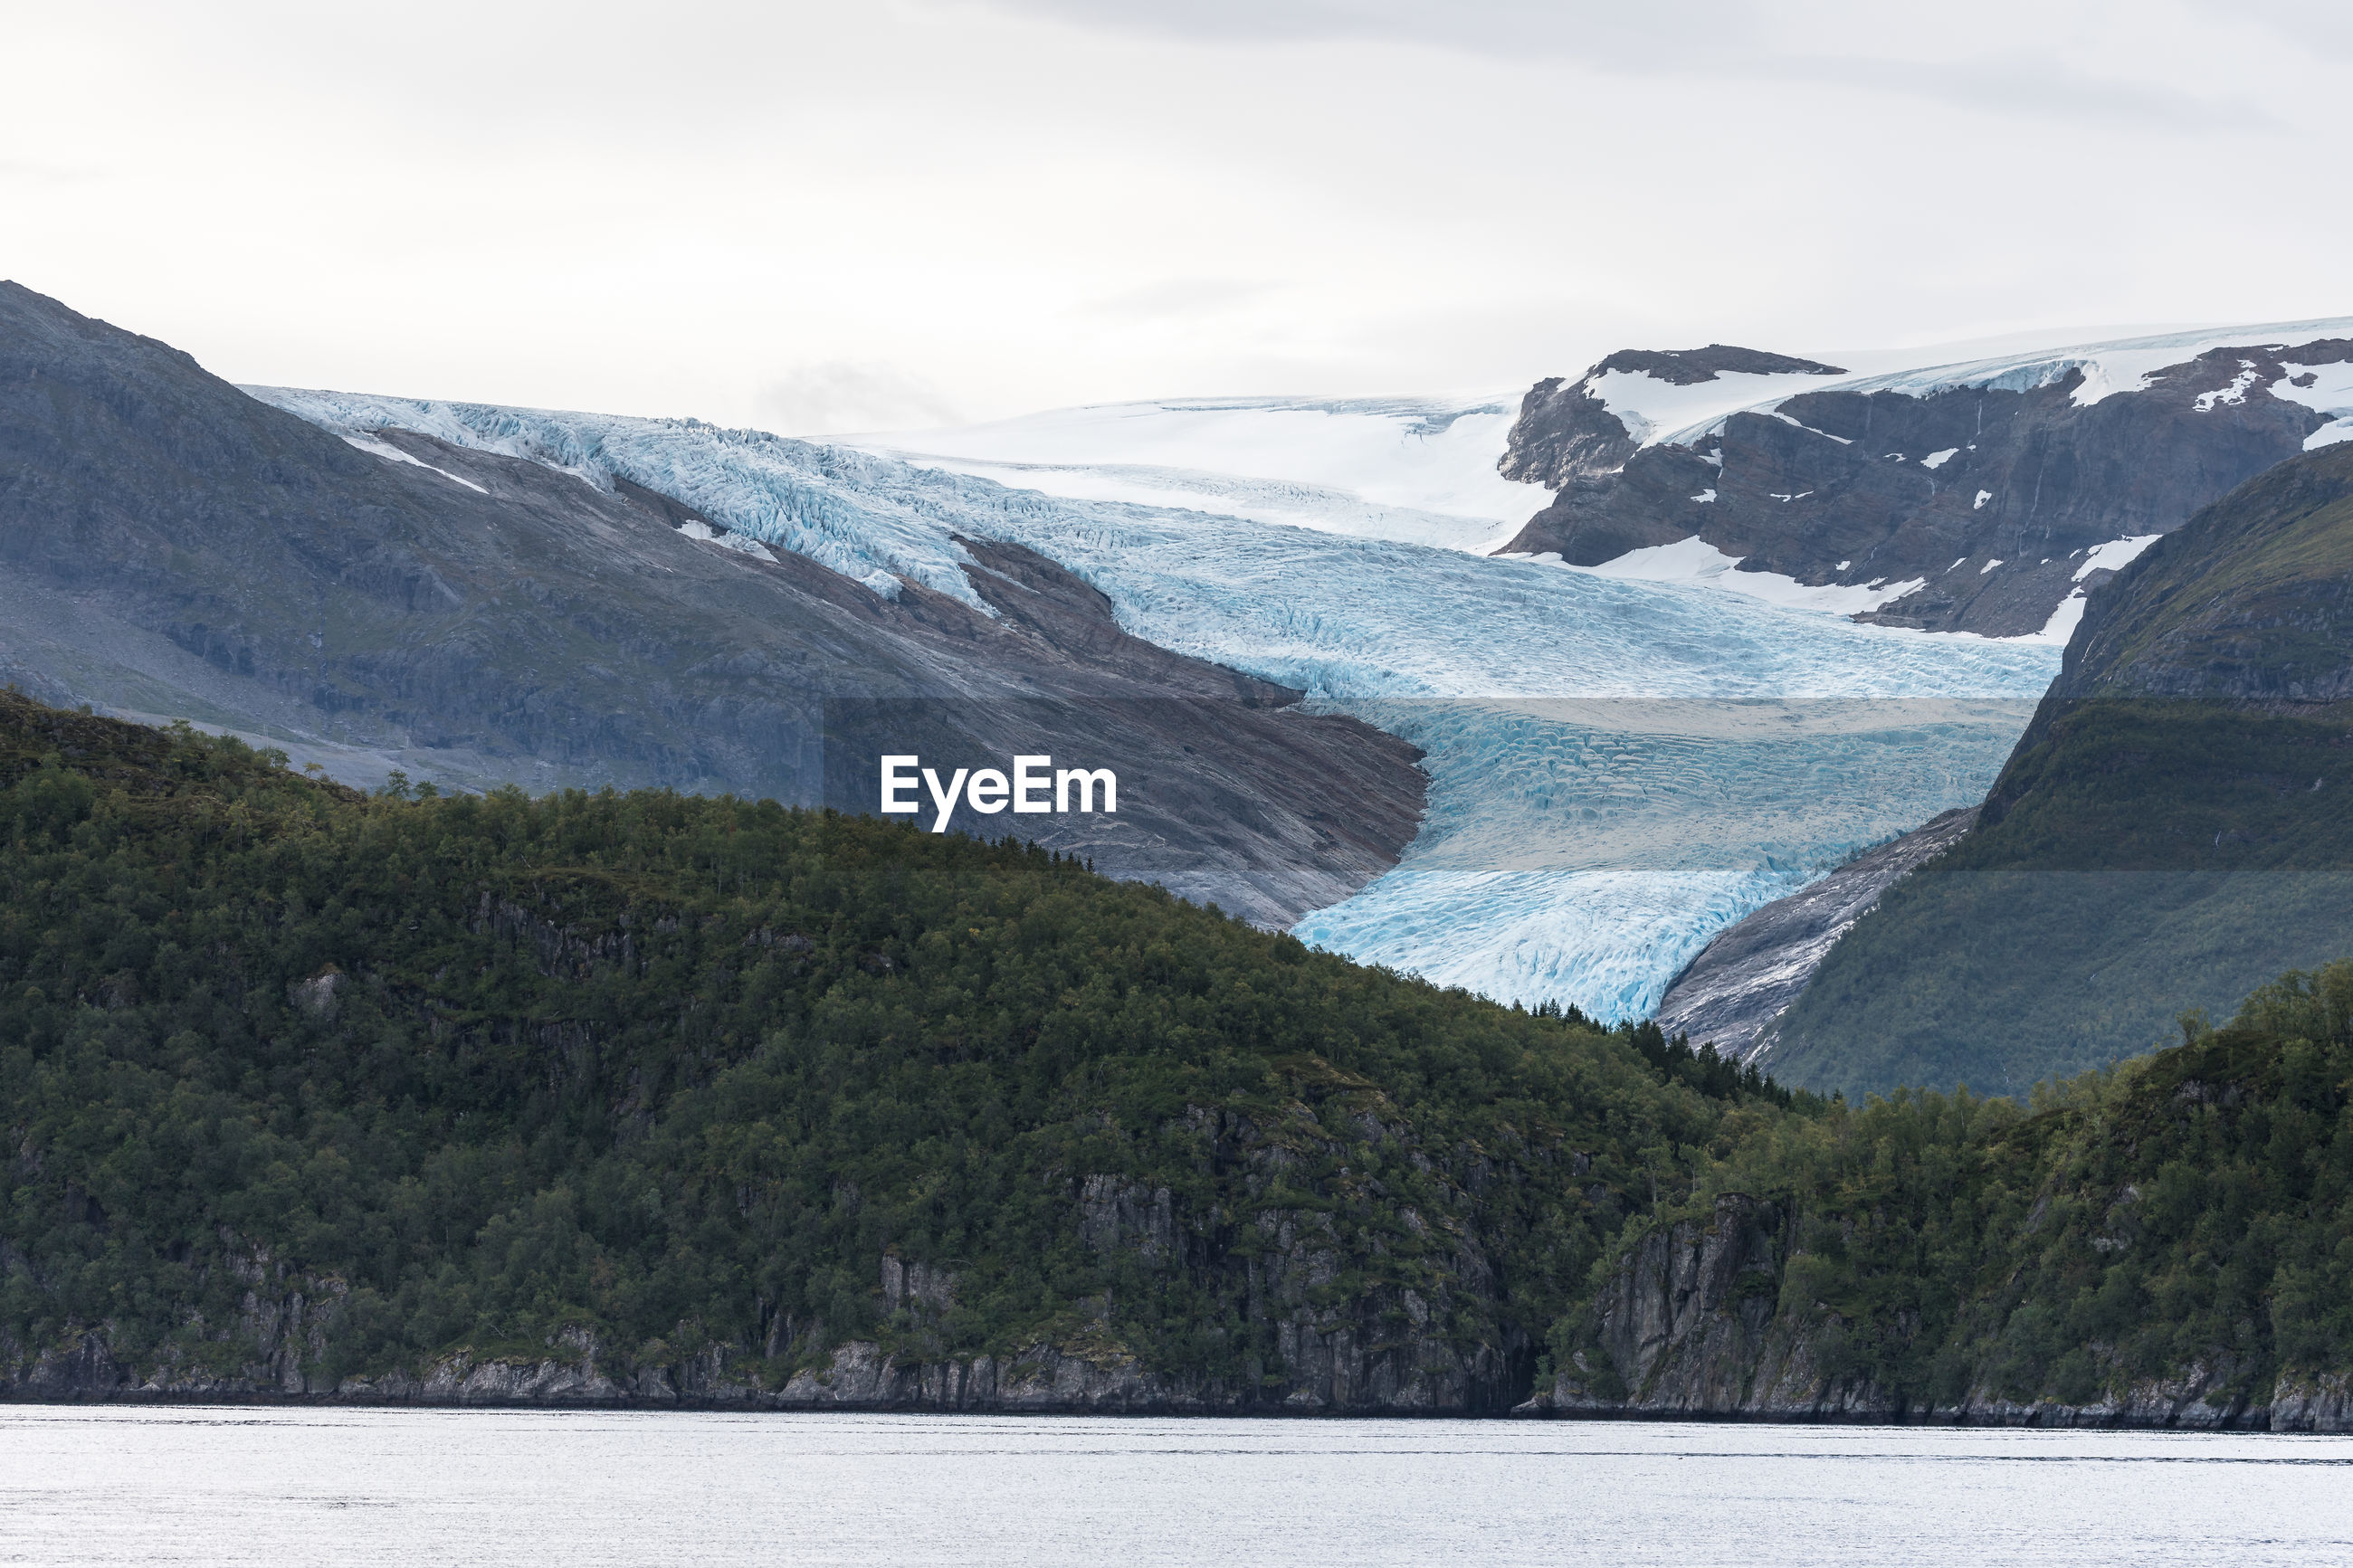 SCENIC VIEW OF LAKE AGAINST MOUNTAIN